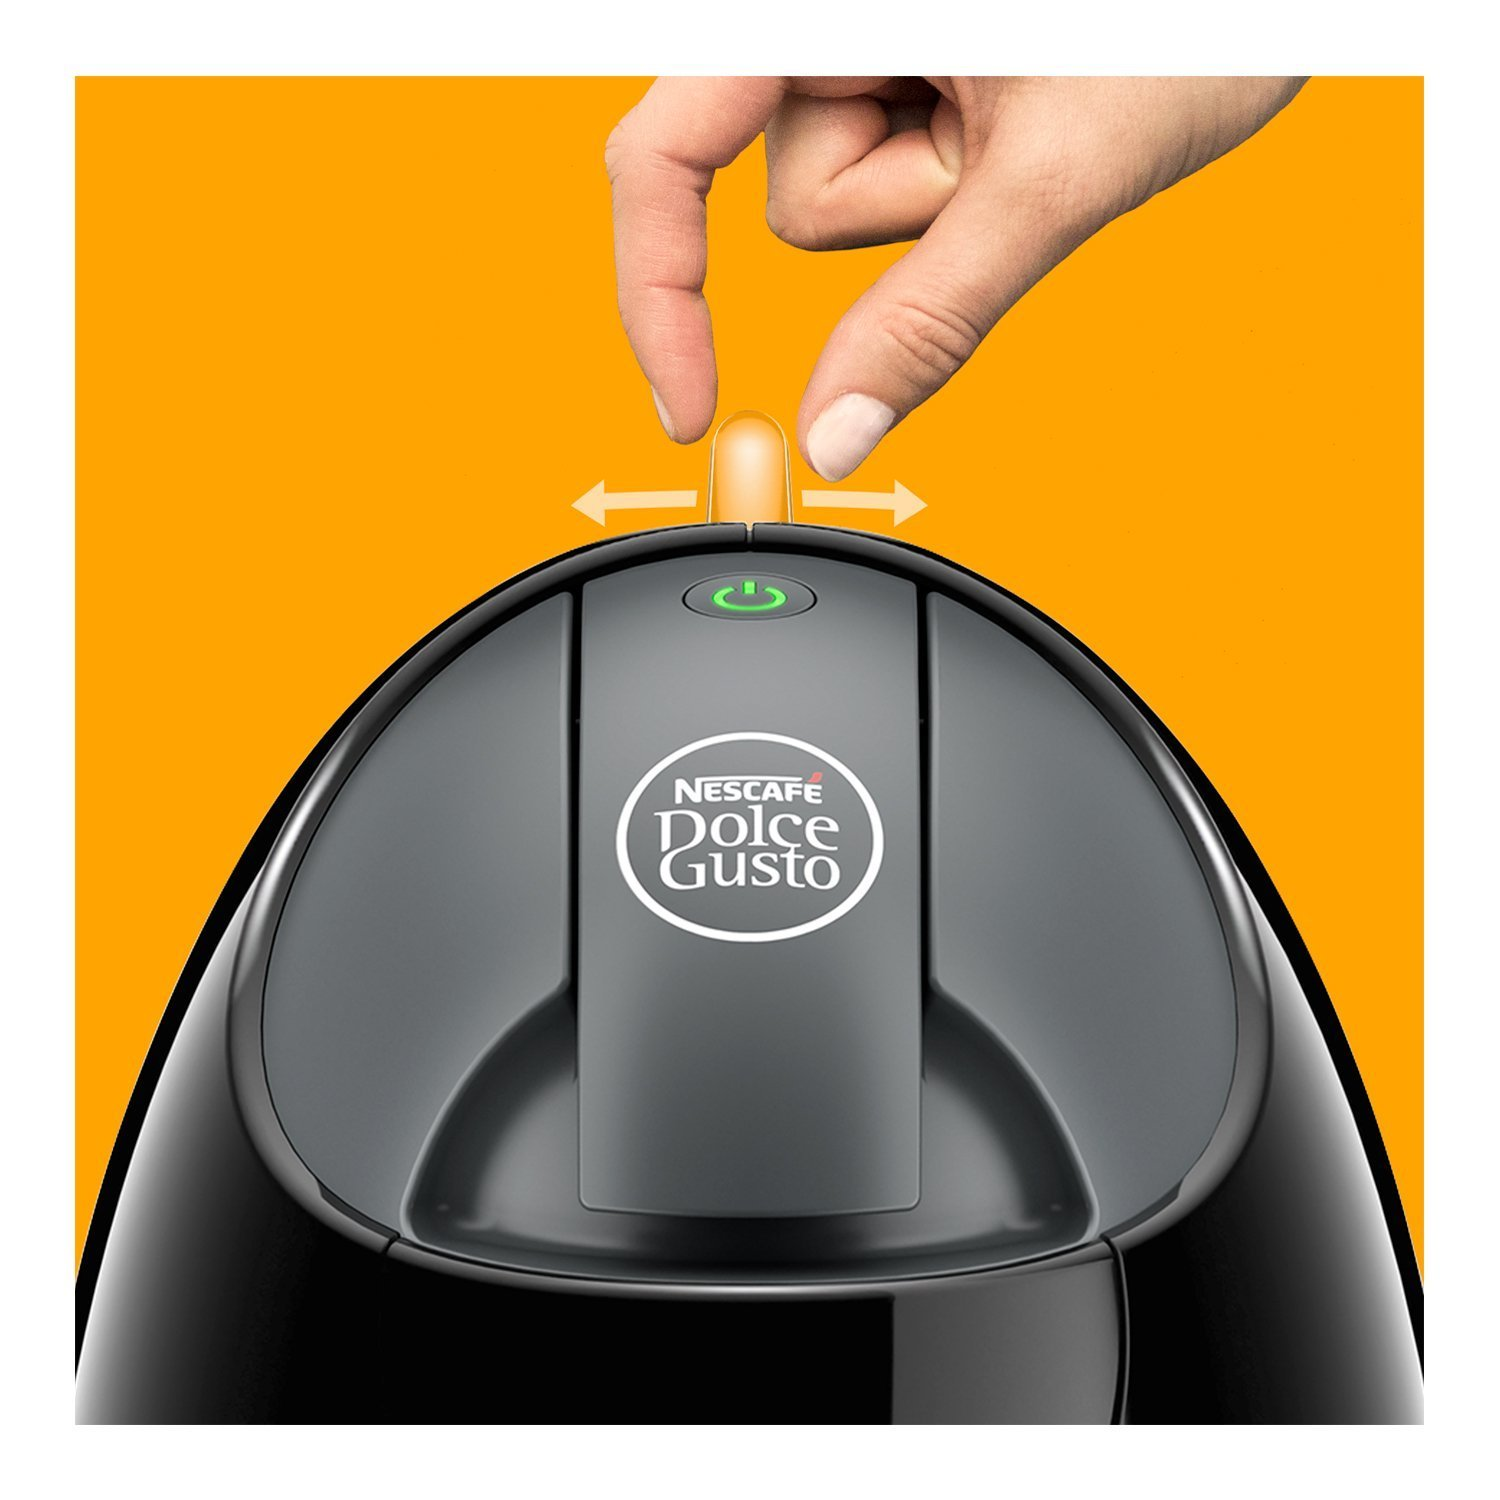 DeLonghi EDG 250.B Dolce Gusto Jovia: Tests &amp